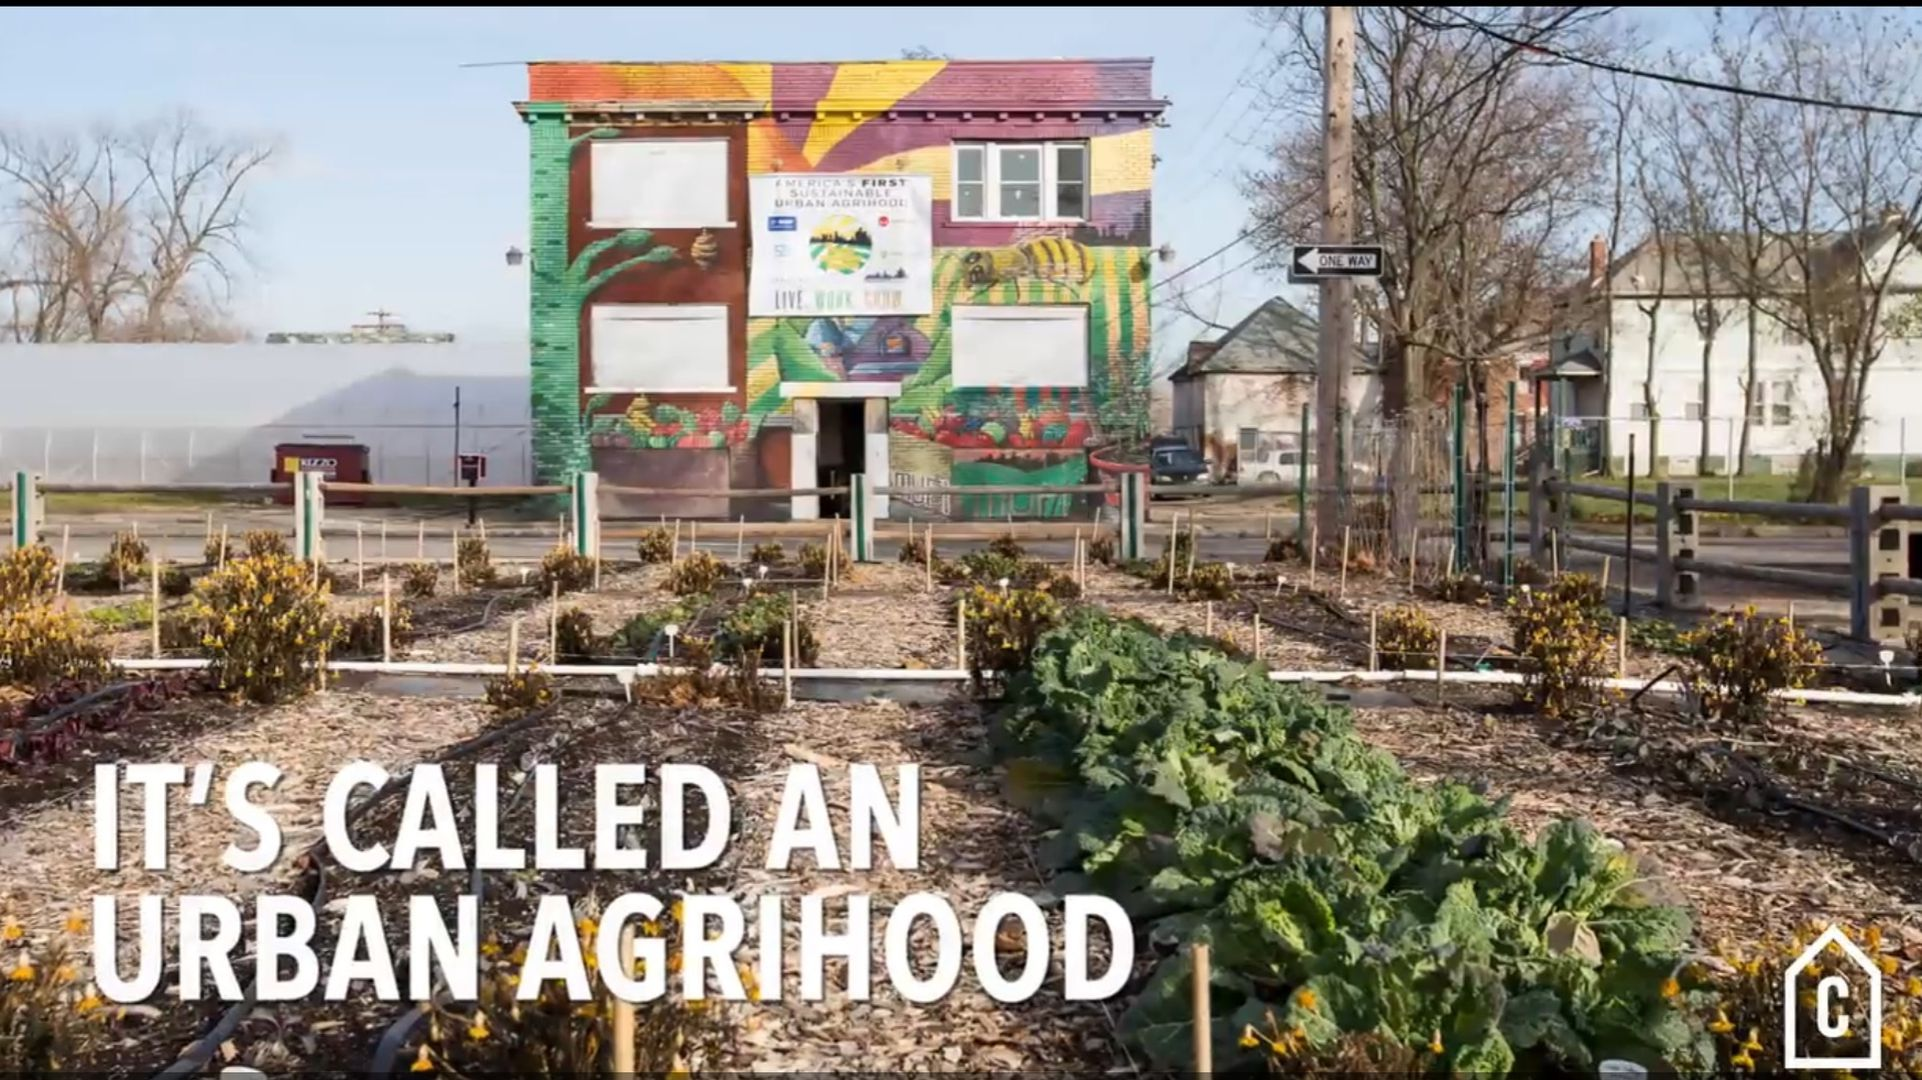 America's first sustainable urban agrihood is growing in Detroit